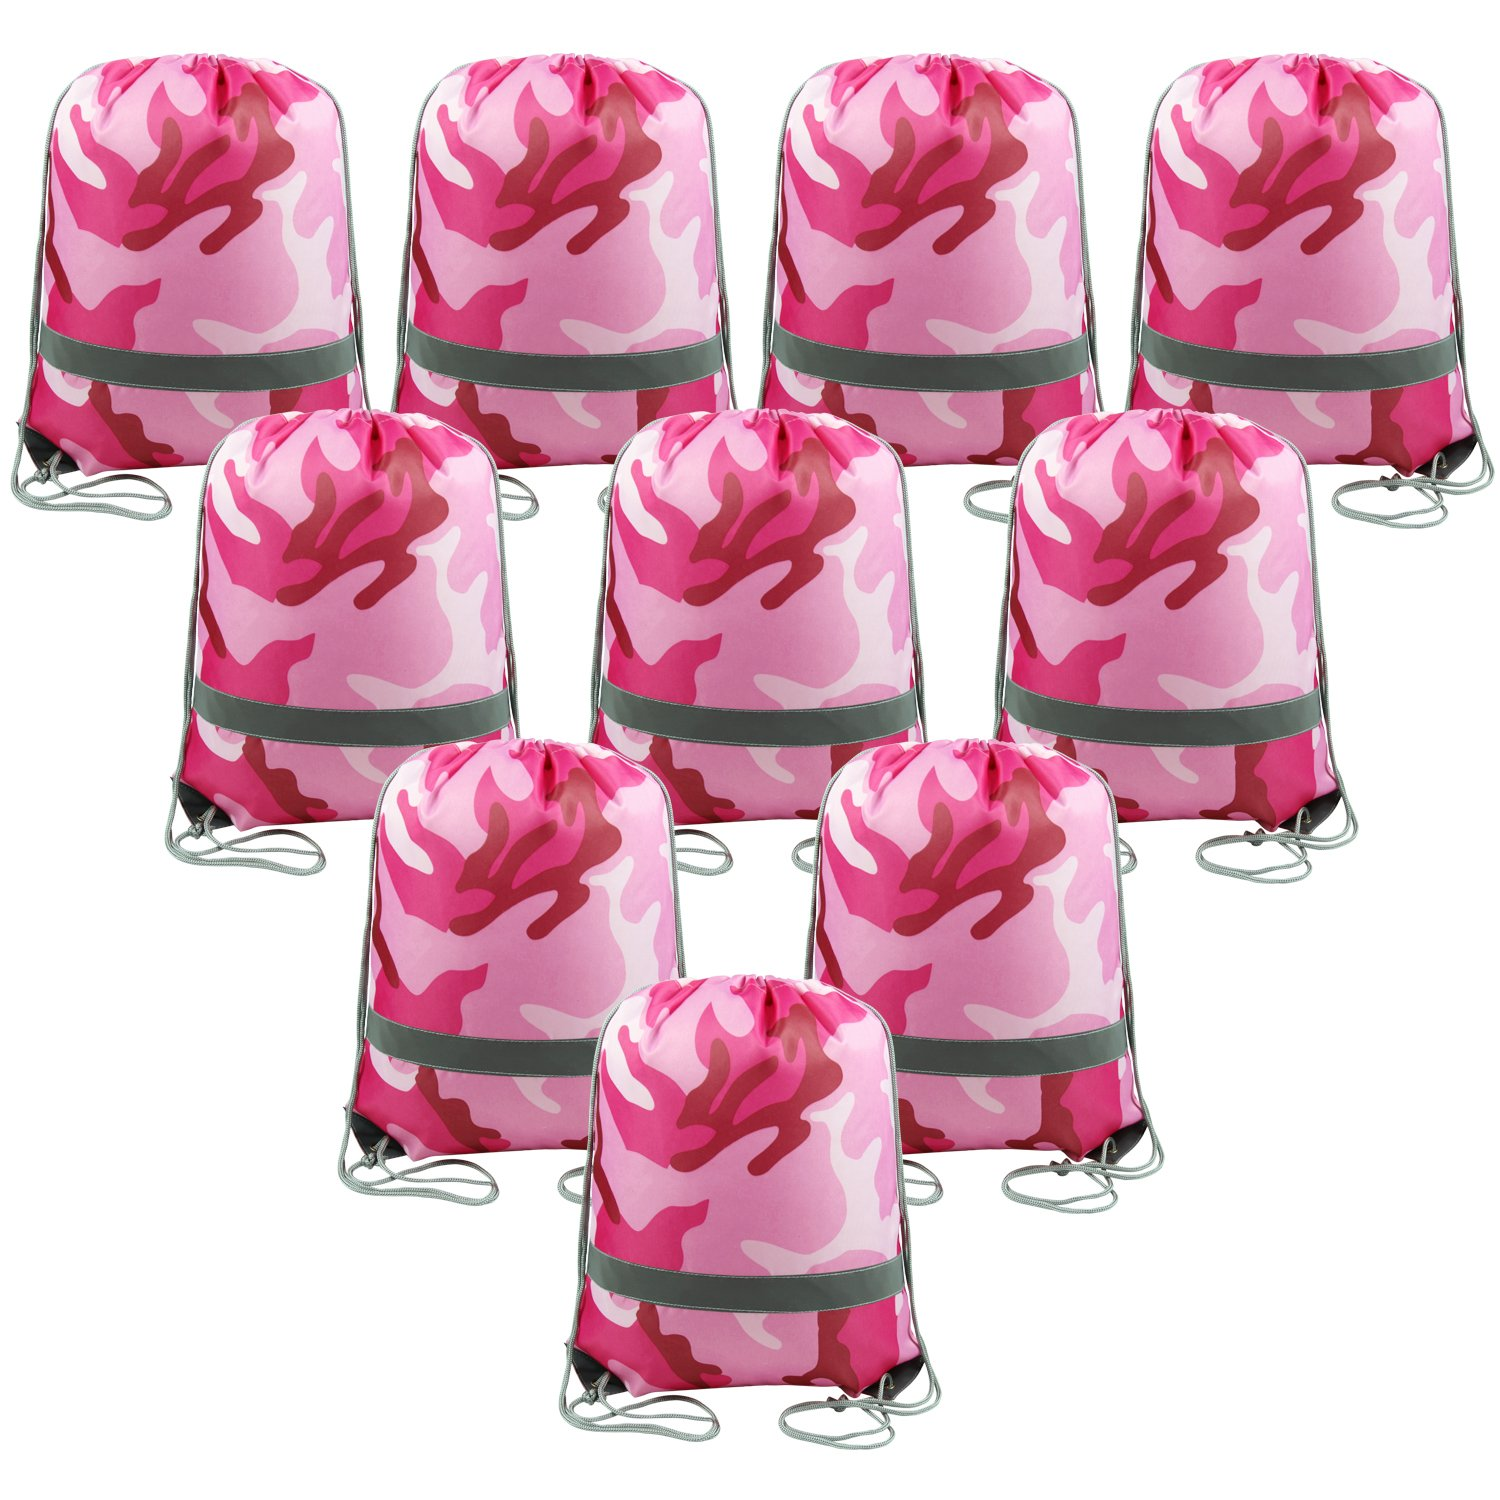 Camo Party Supplies Favors Goodie Bags for Teens Kids Birthday, 10 Pack Camoflauge Drawstring Backpack Bags (Pink Camo)